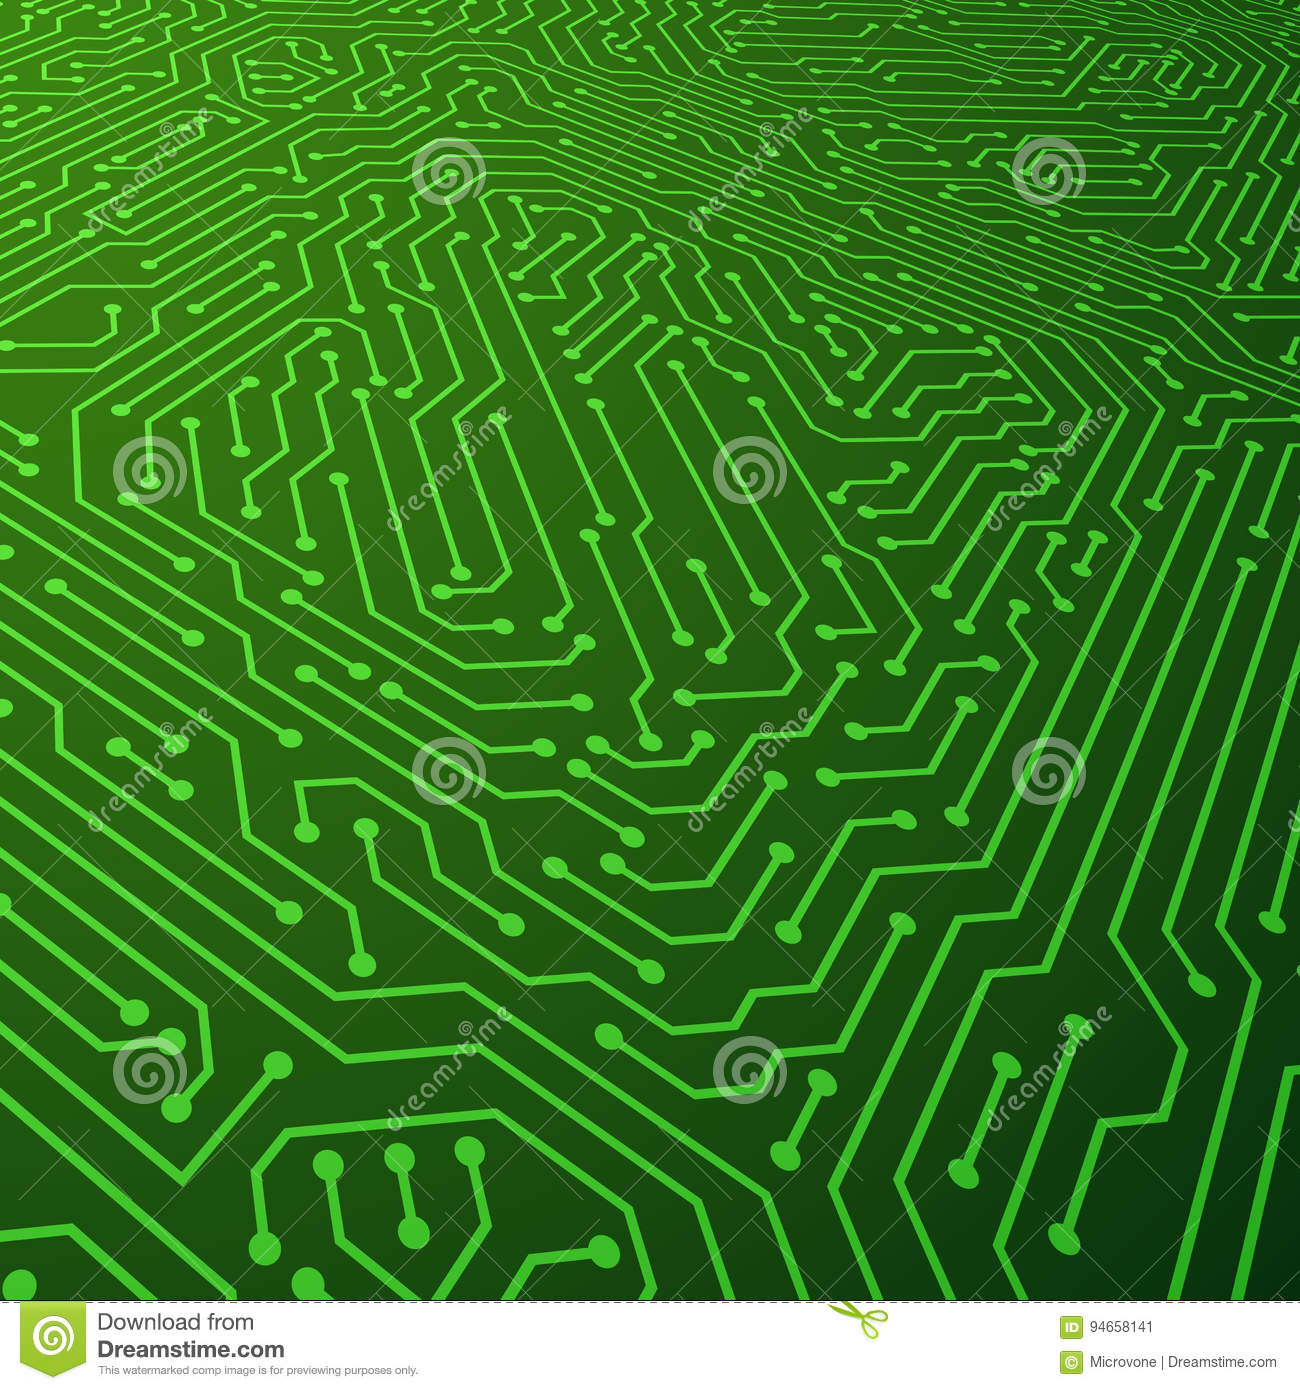 Electric Scheme Vector Background. Circuit Board Components Concept ...